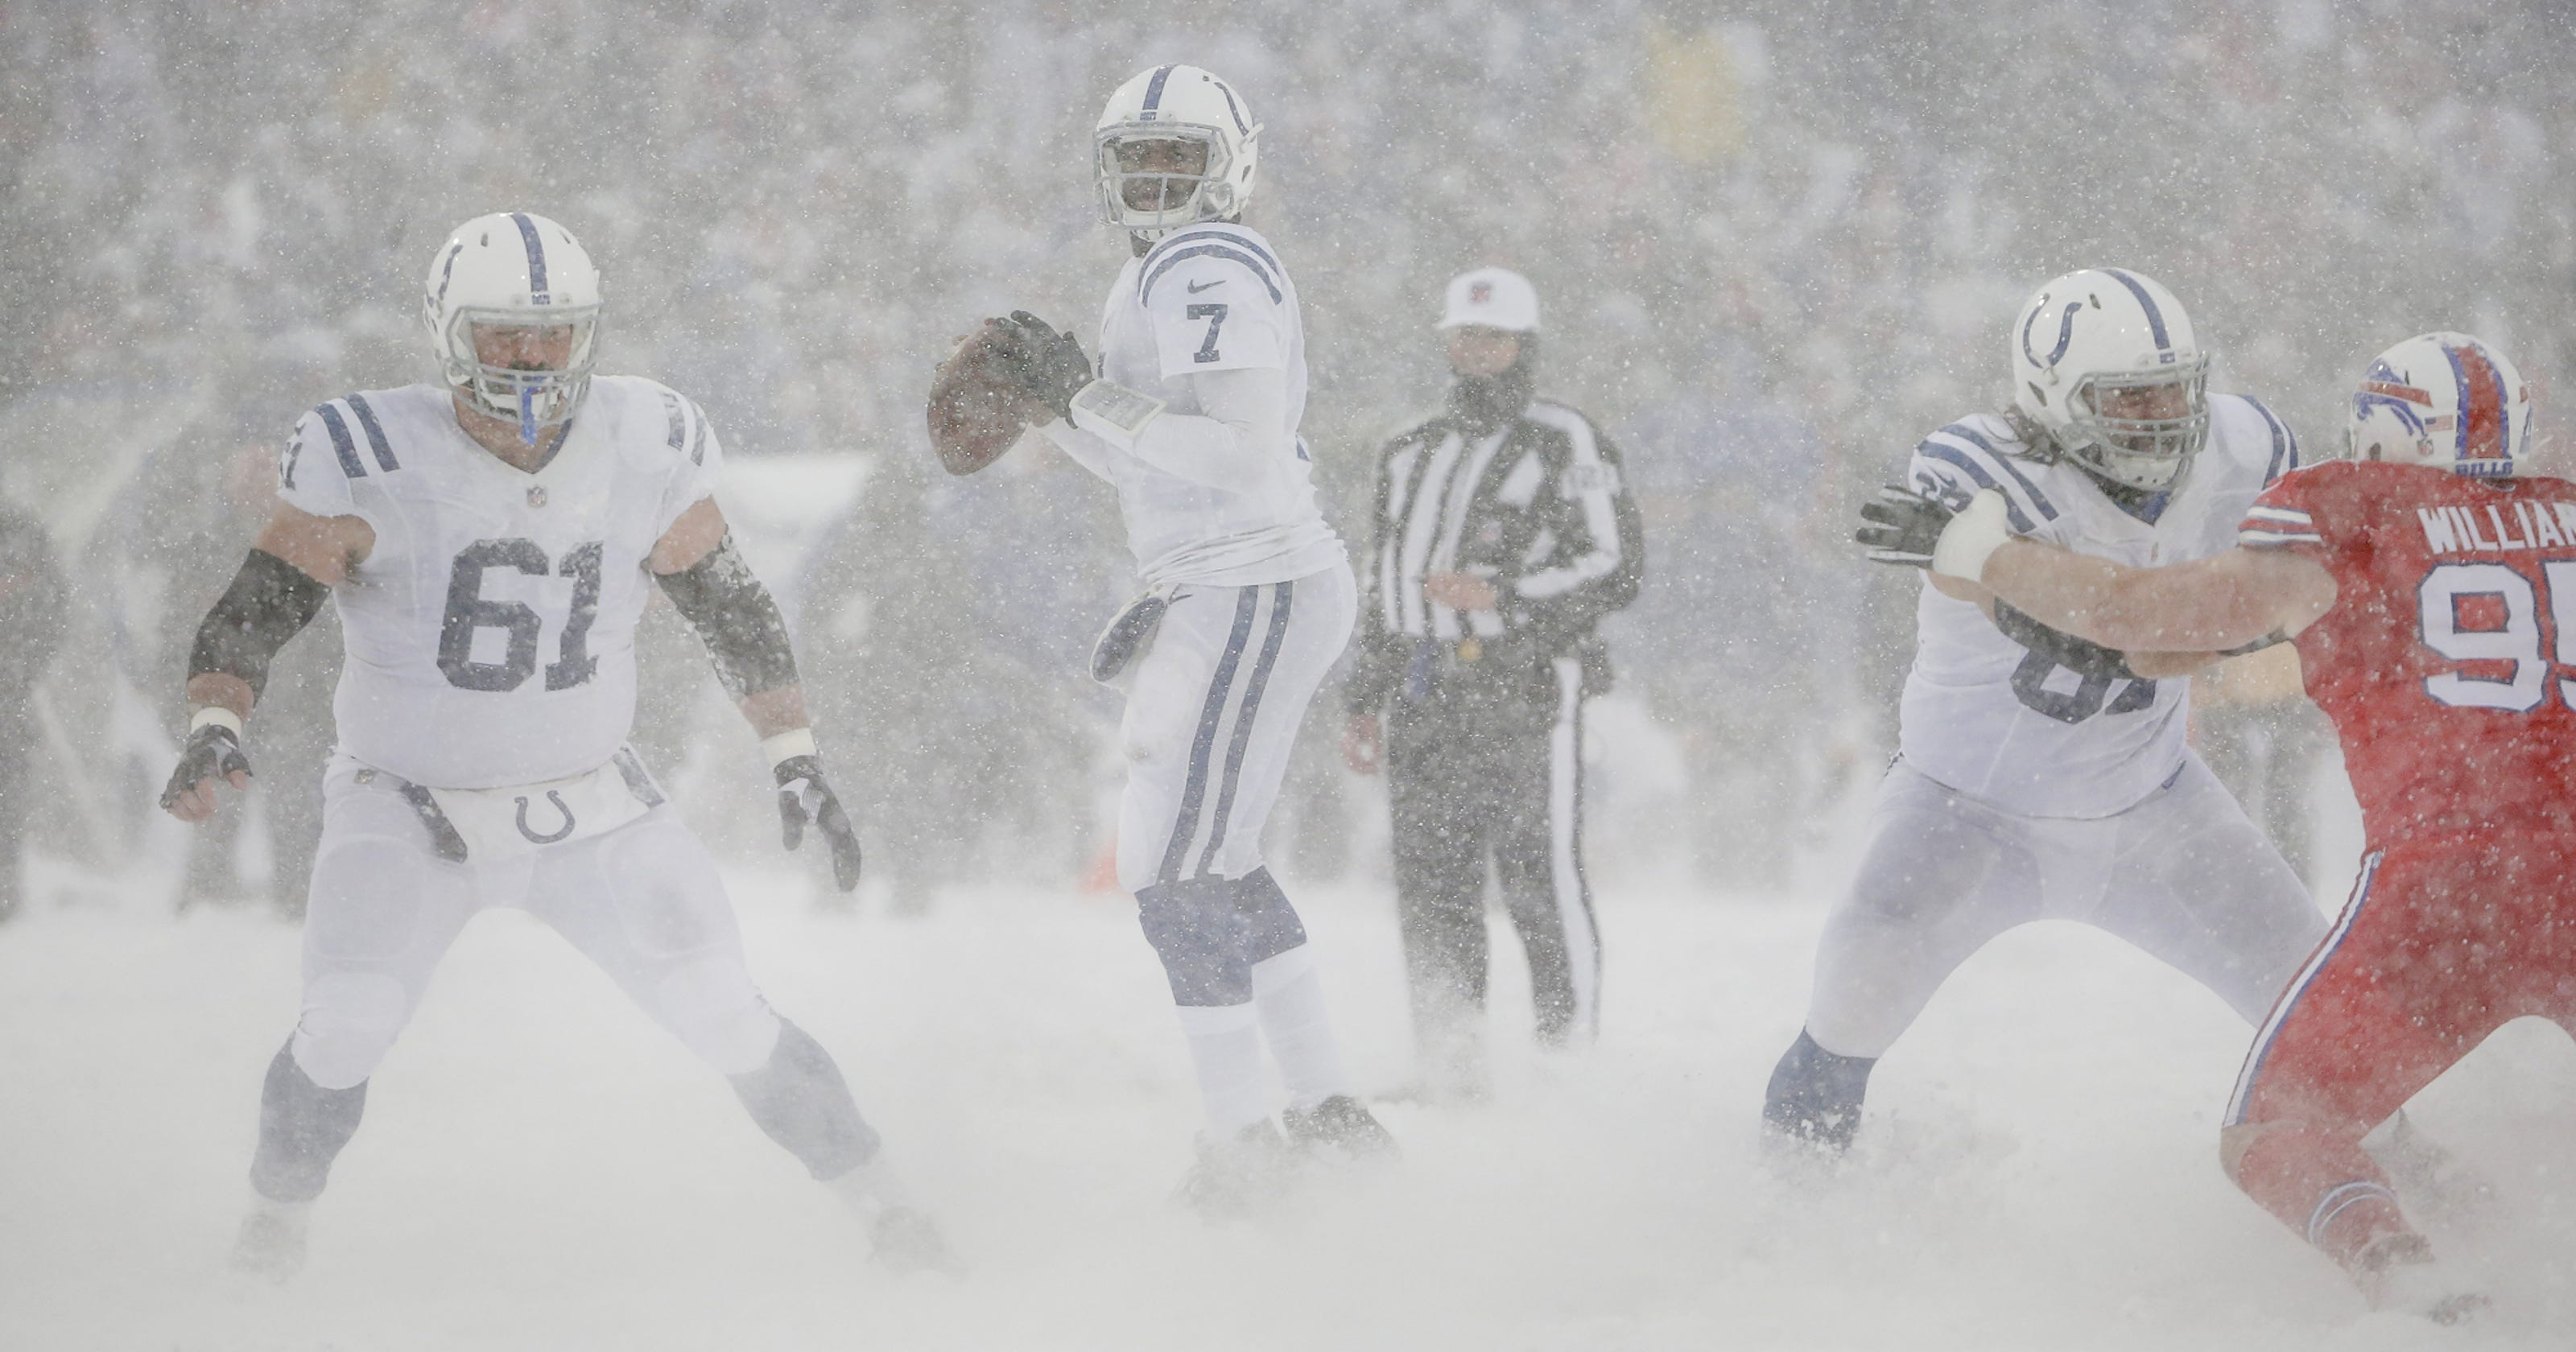 f36f3381 How the Colts tied the Bills was nuts